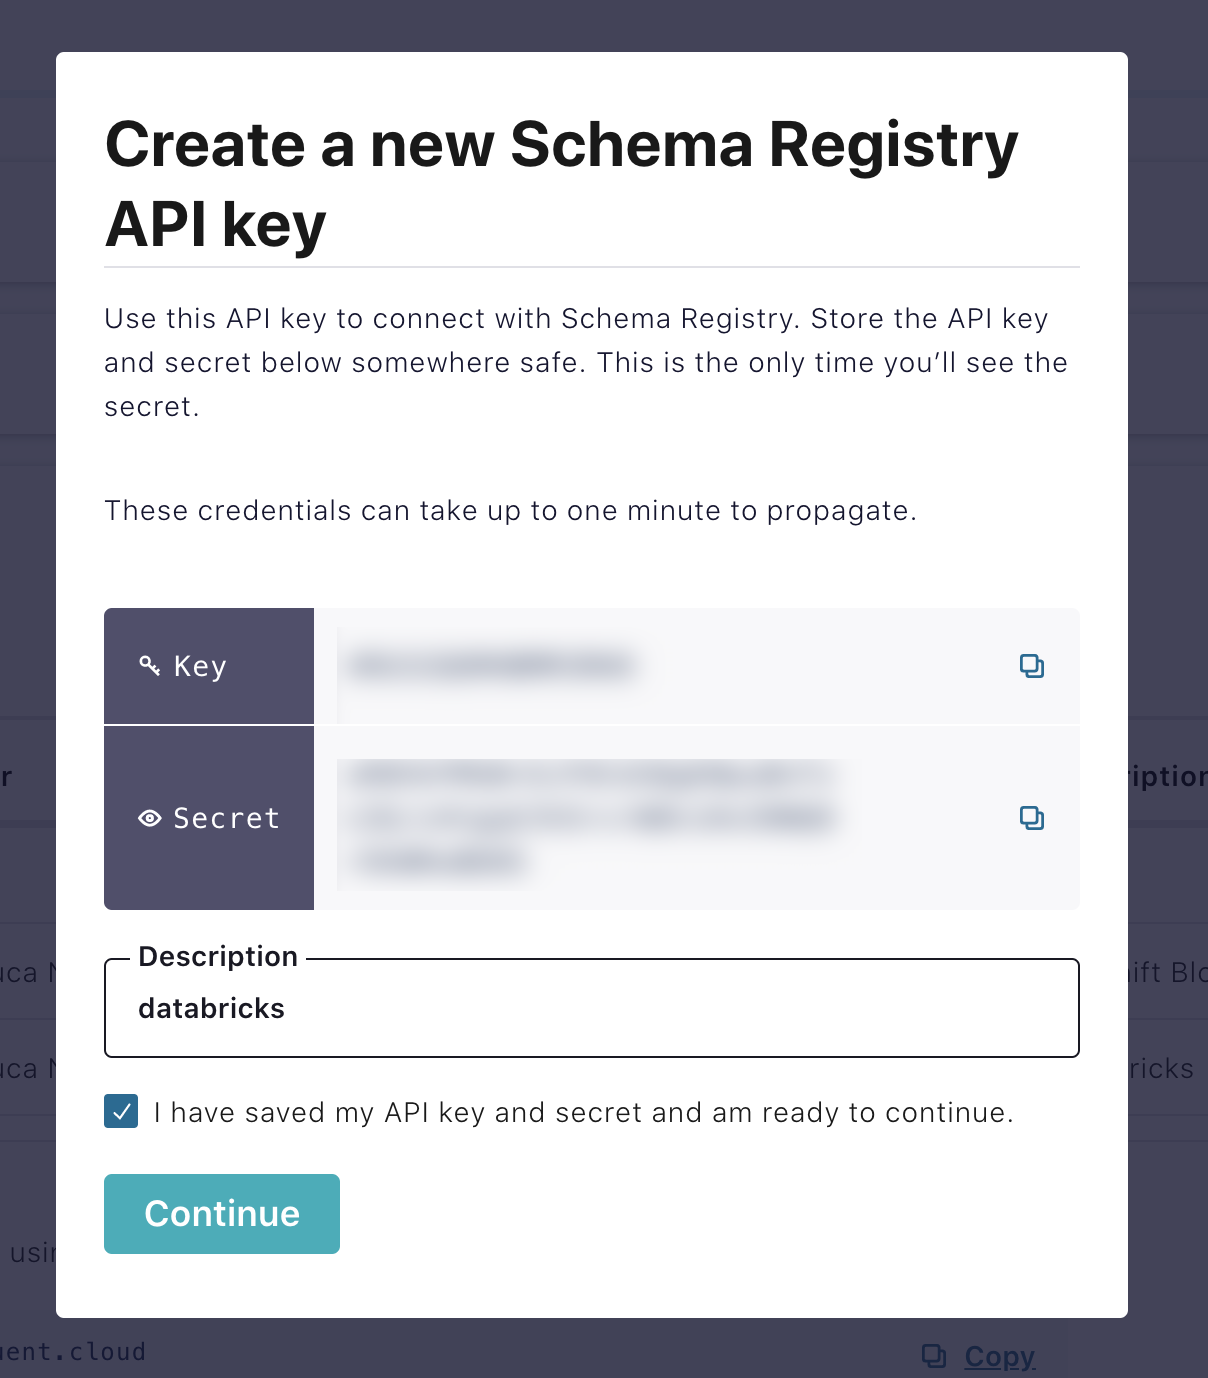 New Schema Registry API key creation